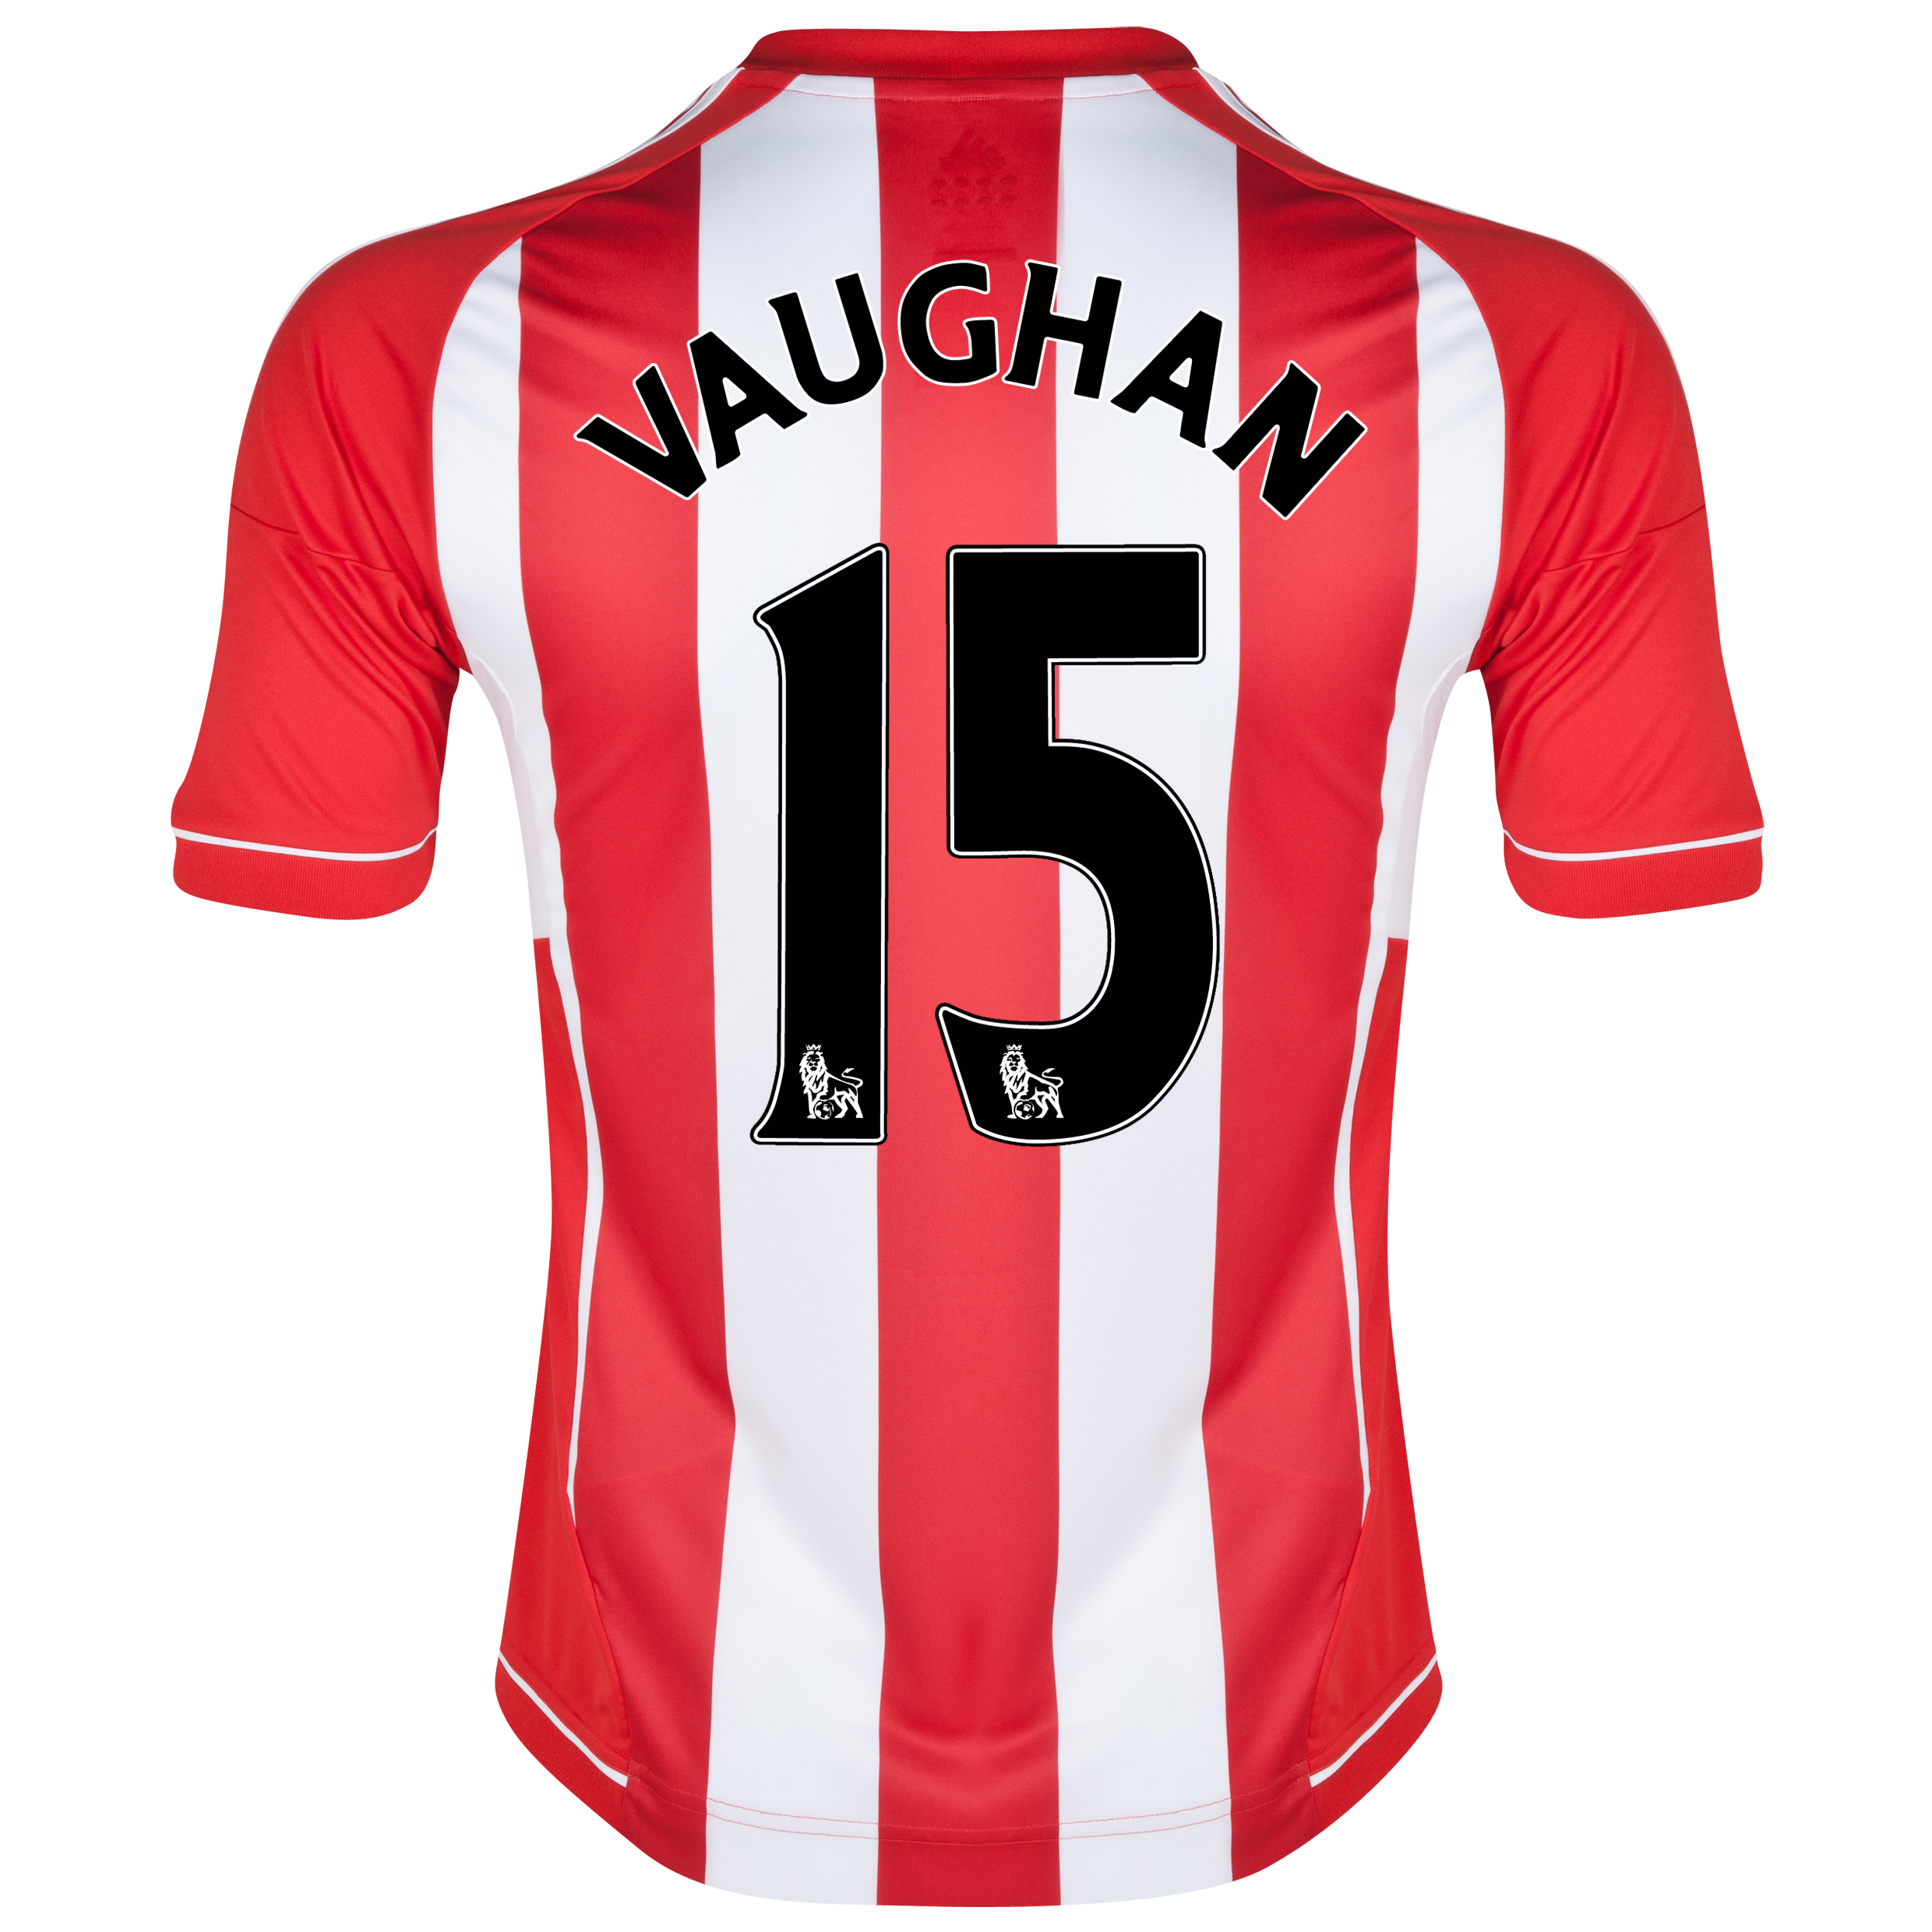 Sunderland Home Shirt 2012/13 with Vaughan 15 printing